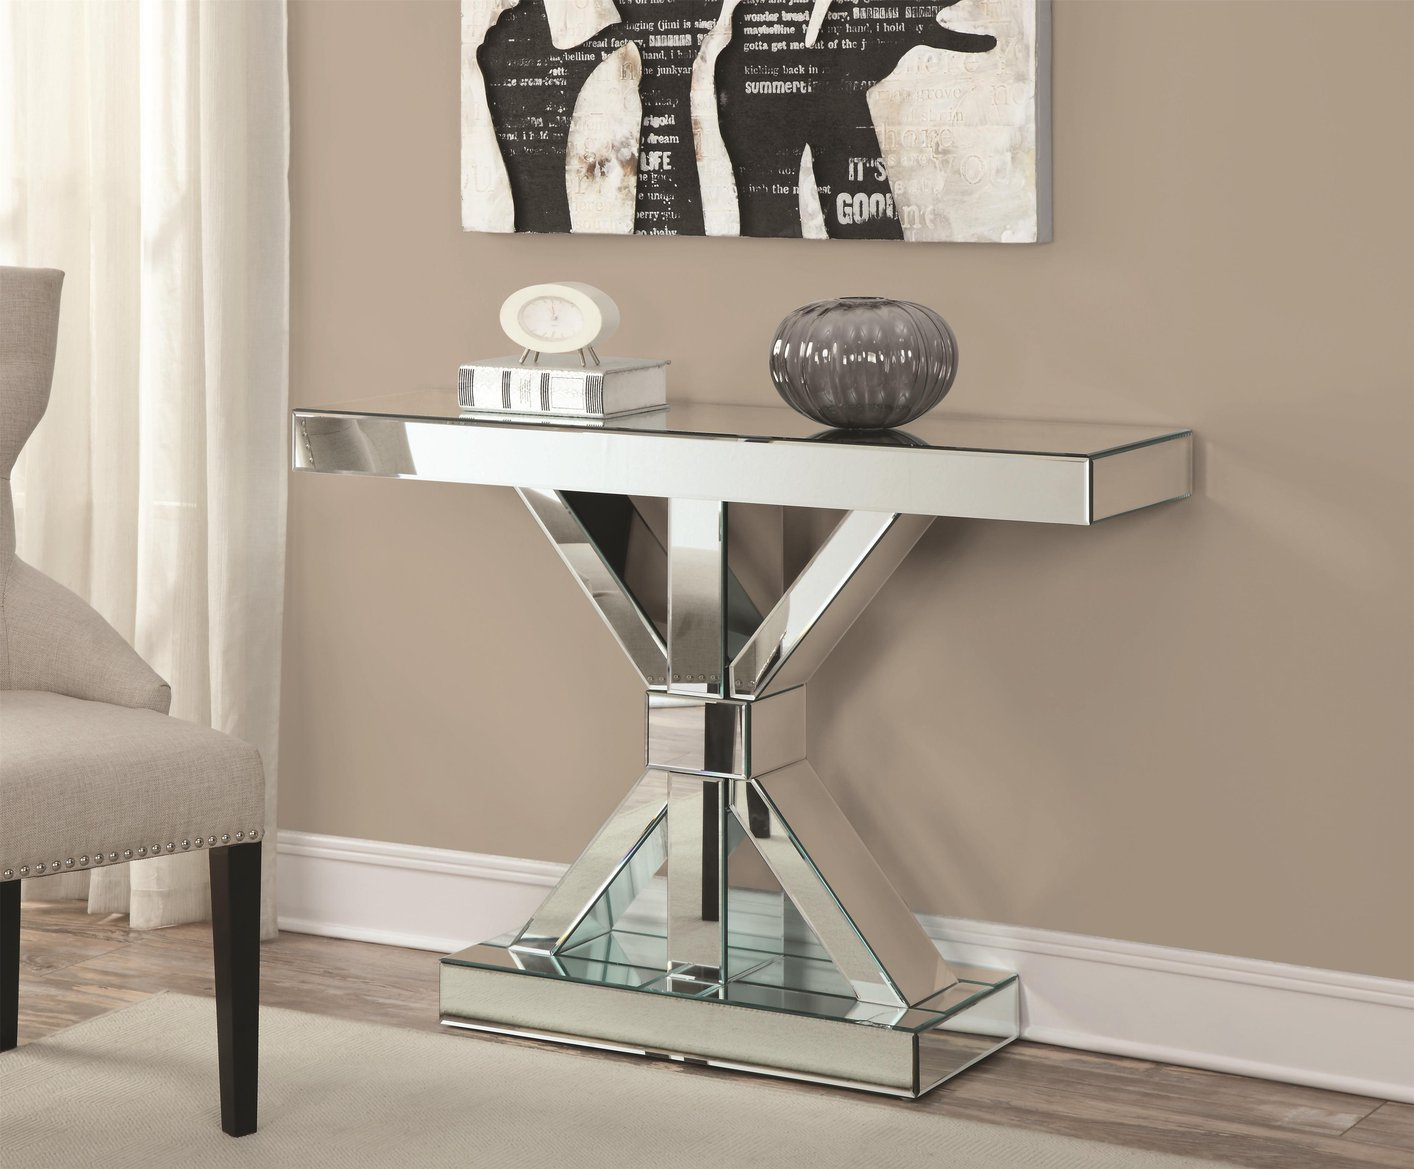 Glass Console Tables   Catchy Gorgeous Decorative Pieces For Stylish Homes    Sofa Table